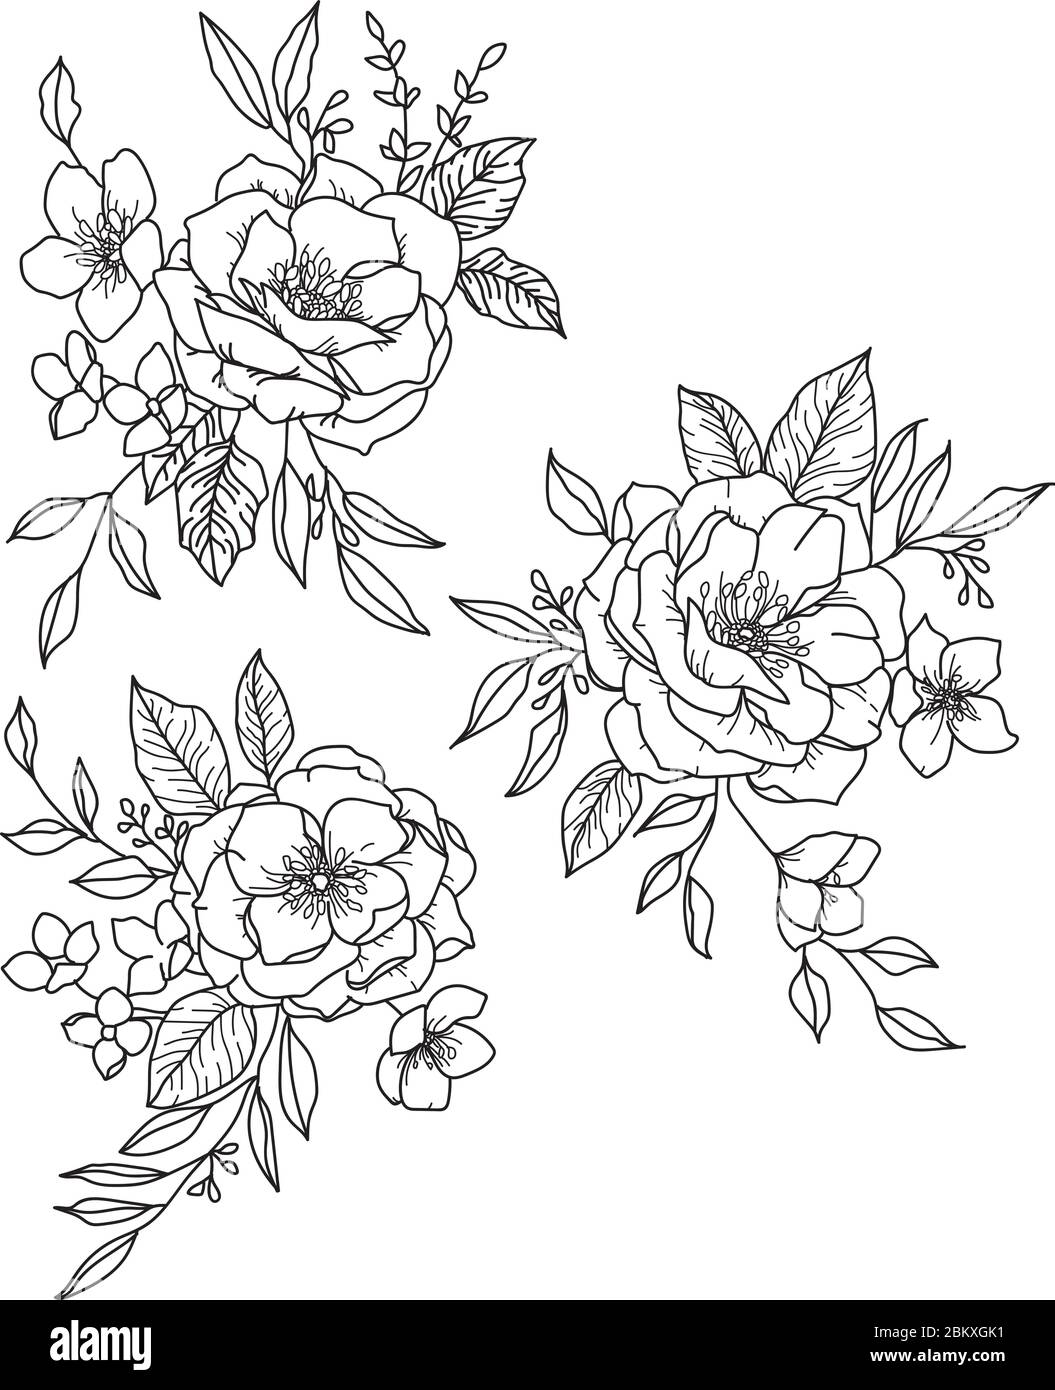 Boho Flowers And Foliage Three Small Black And White Peony Bouquets With Leaves Stock Vector Image Art Alamy